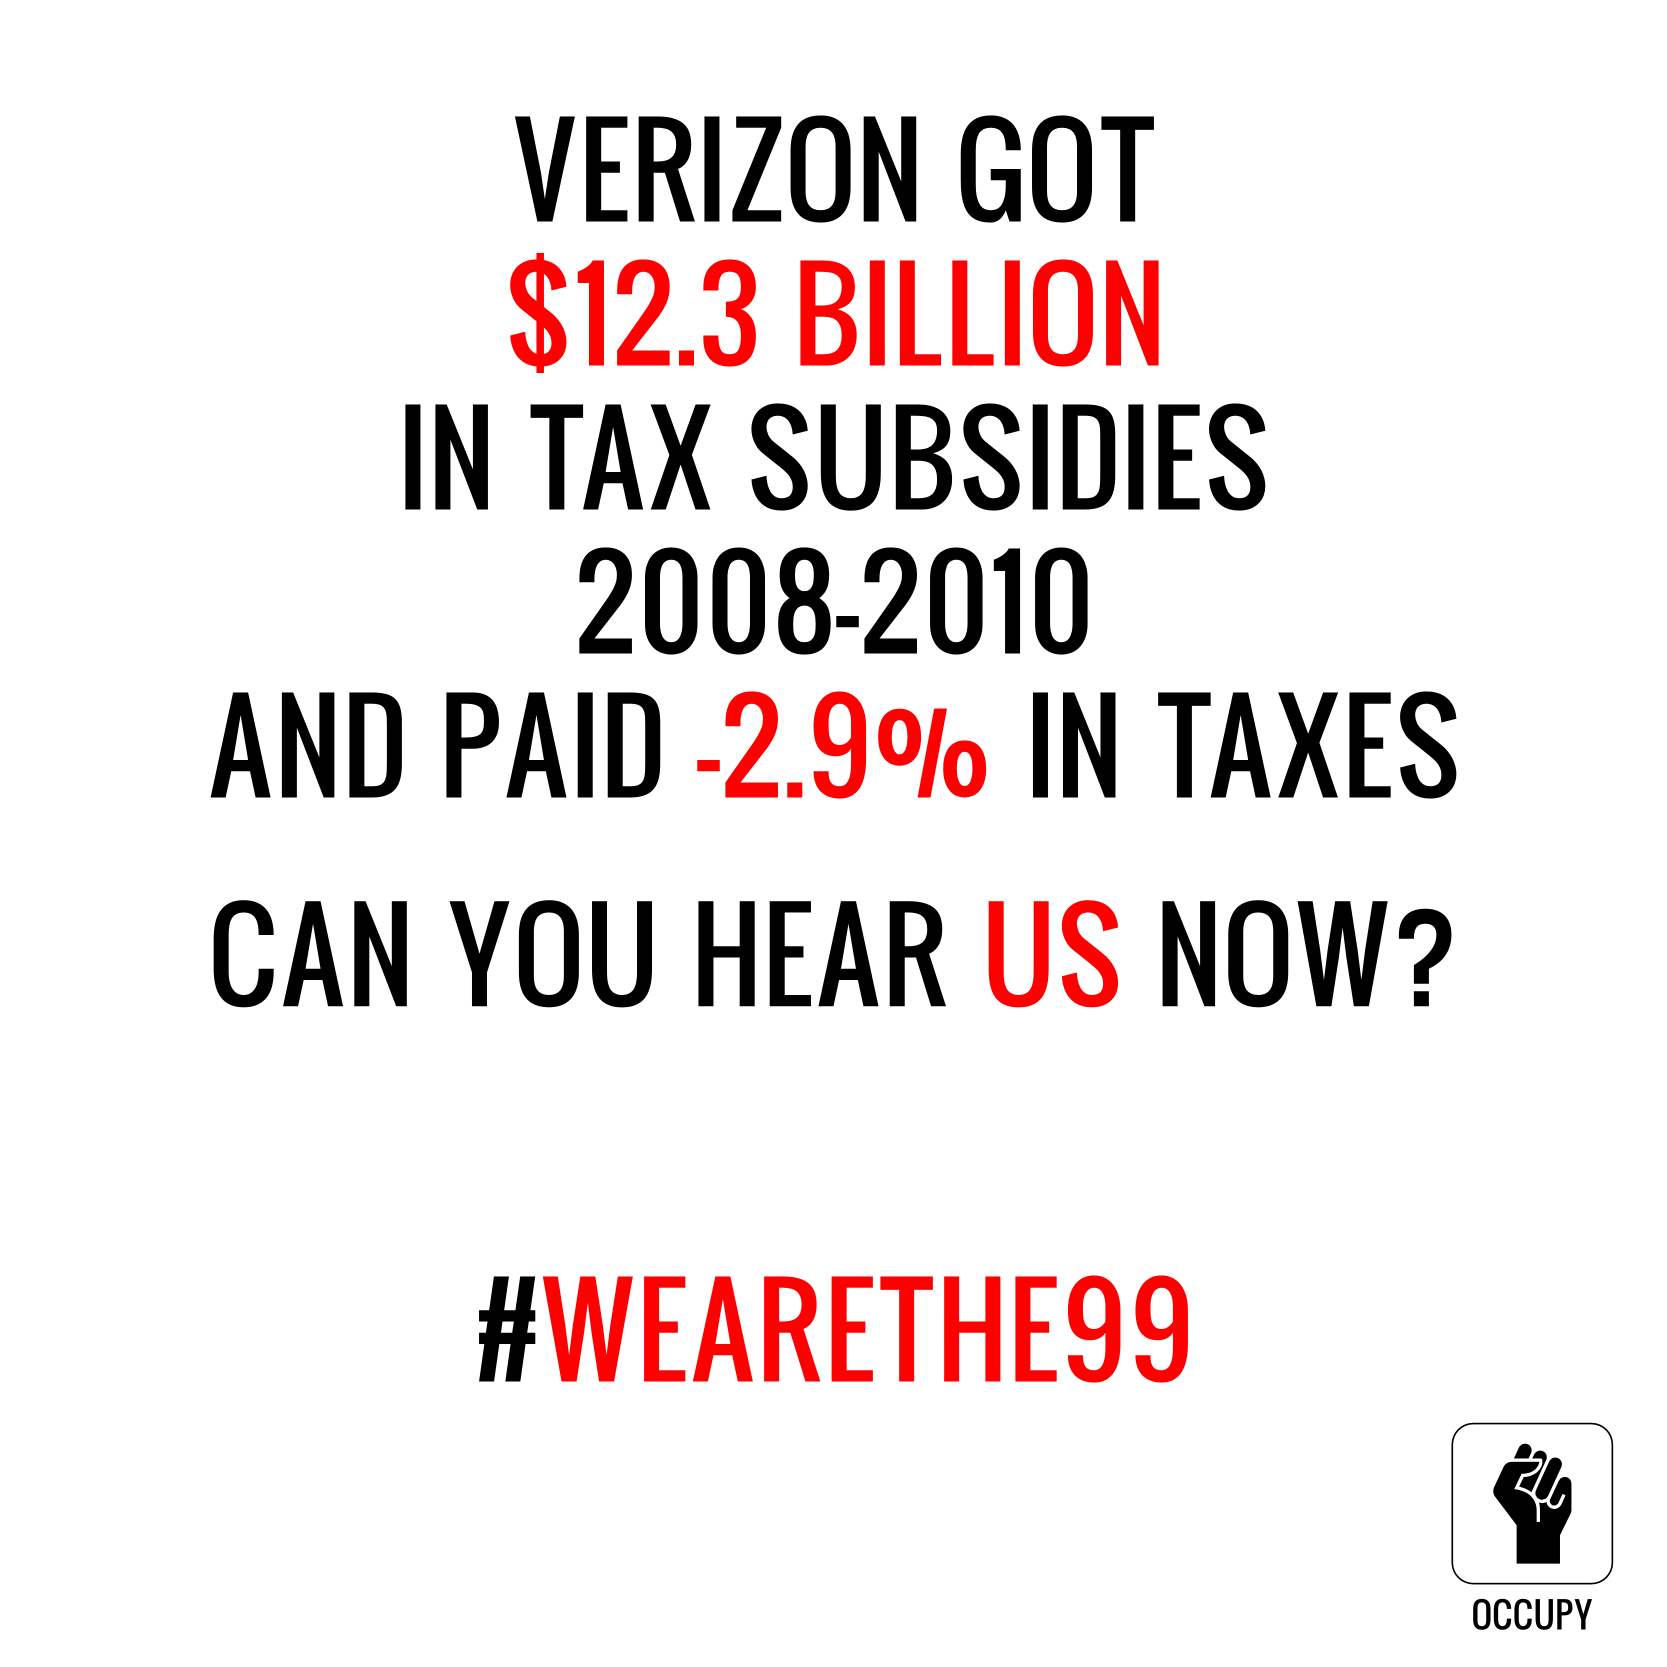 Verizon Verizons Corporate Welfare